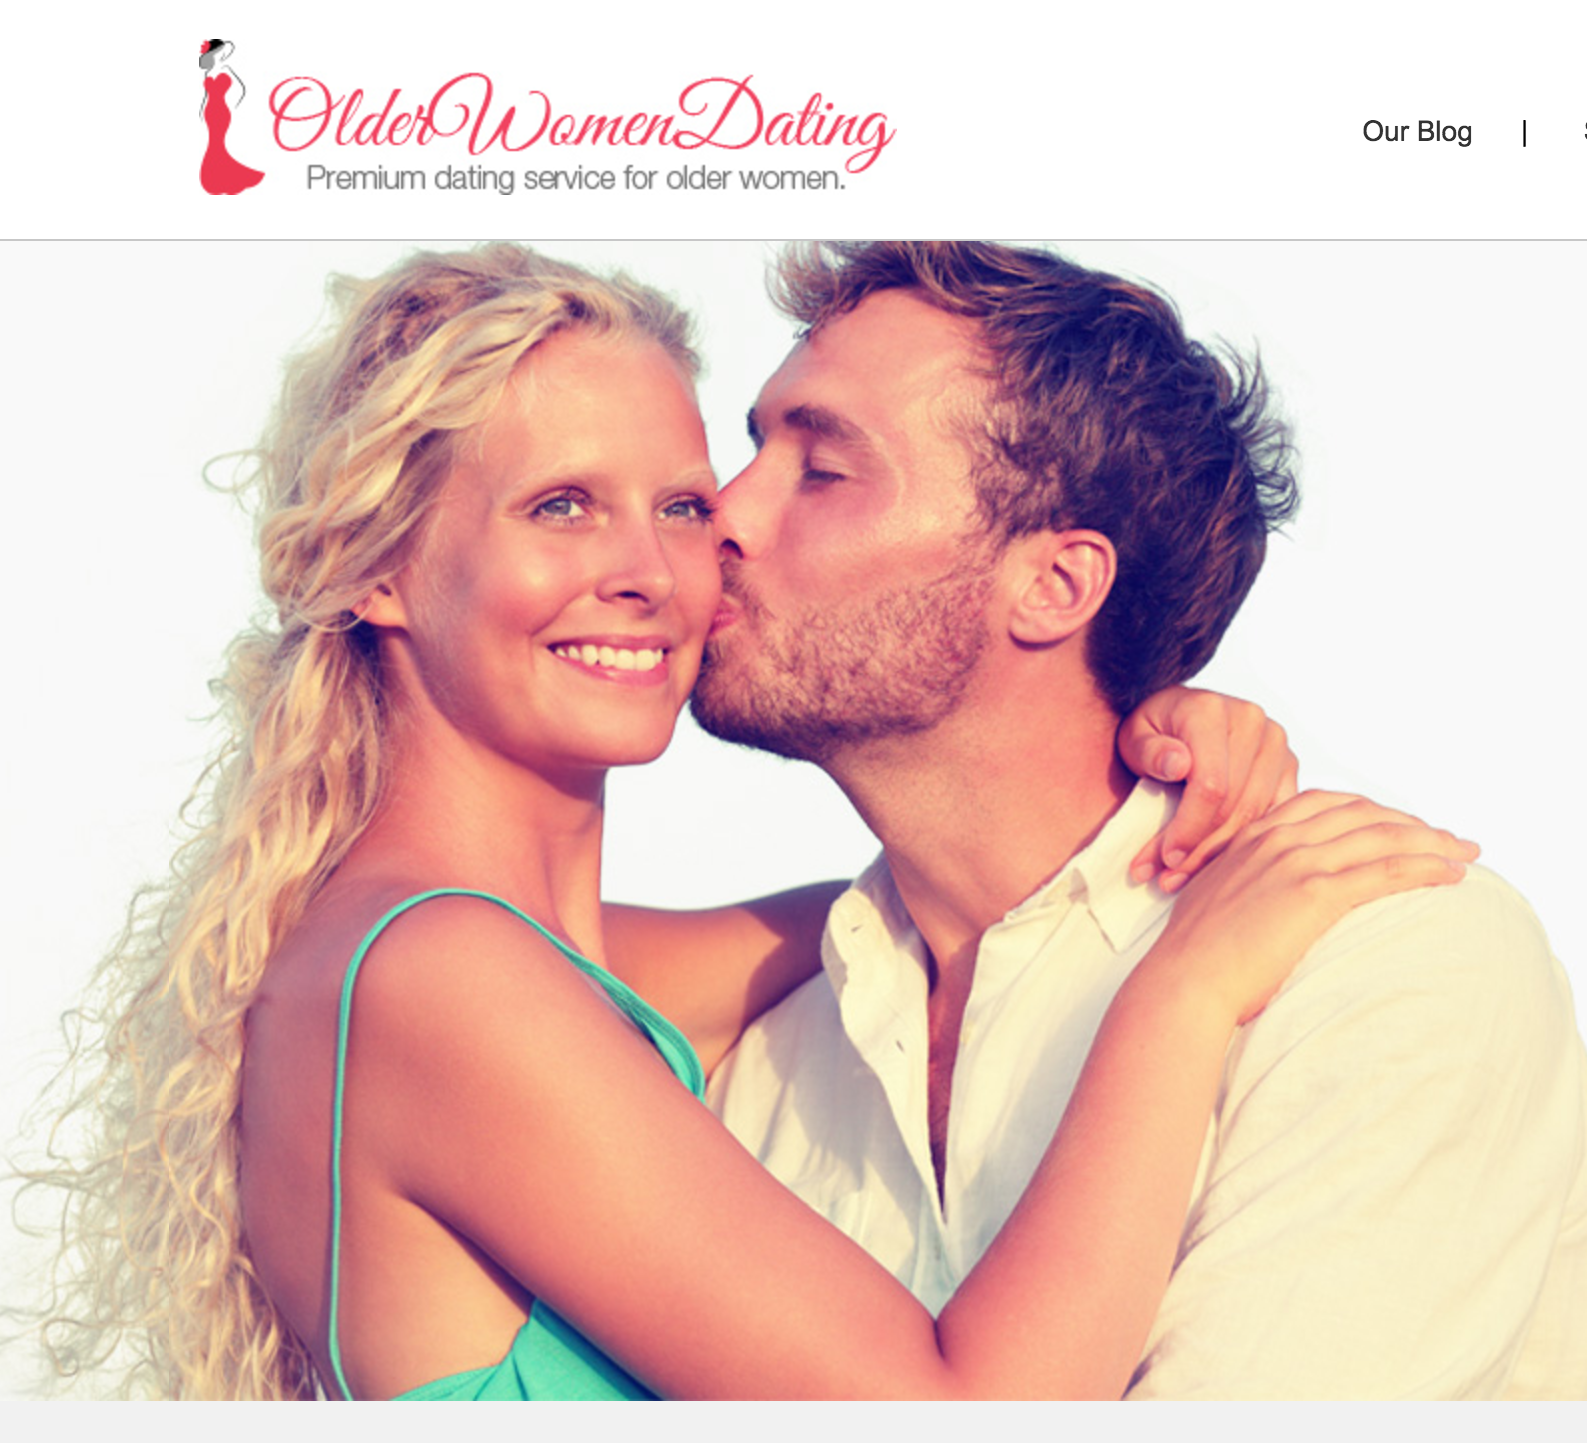 Appeal to younger women online dating sites